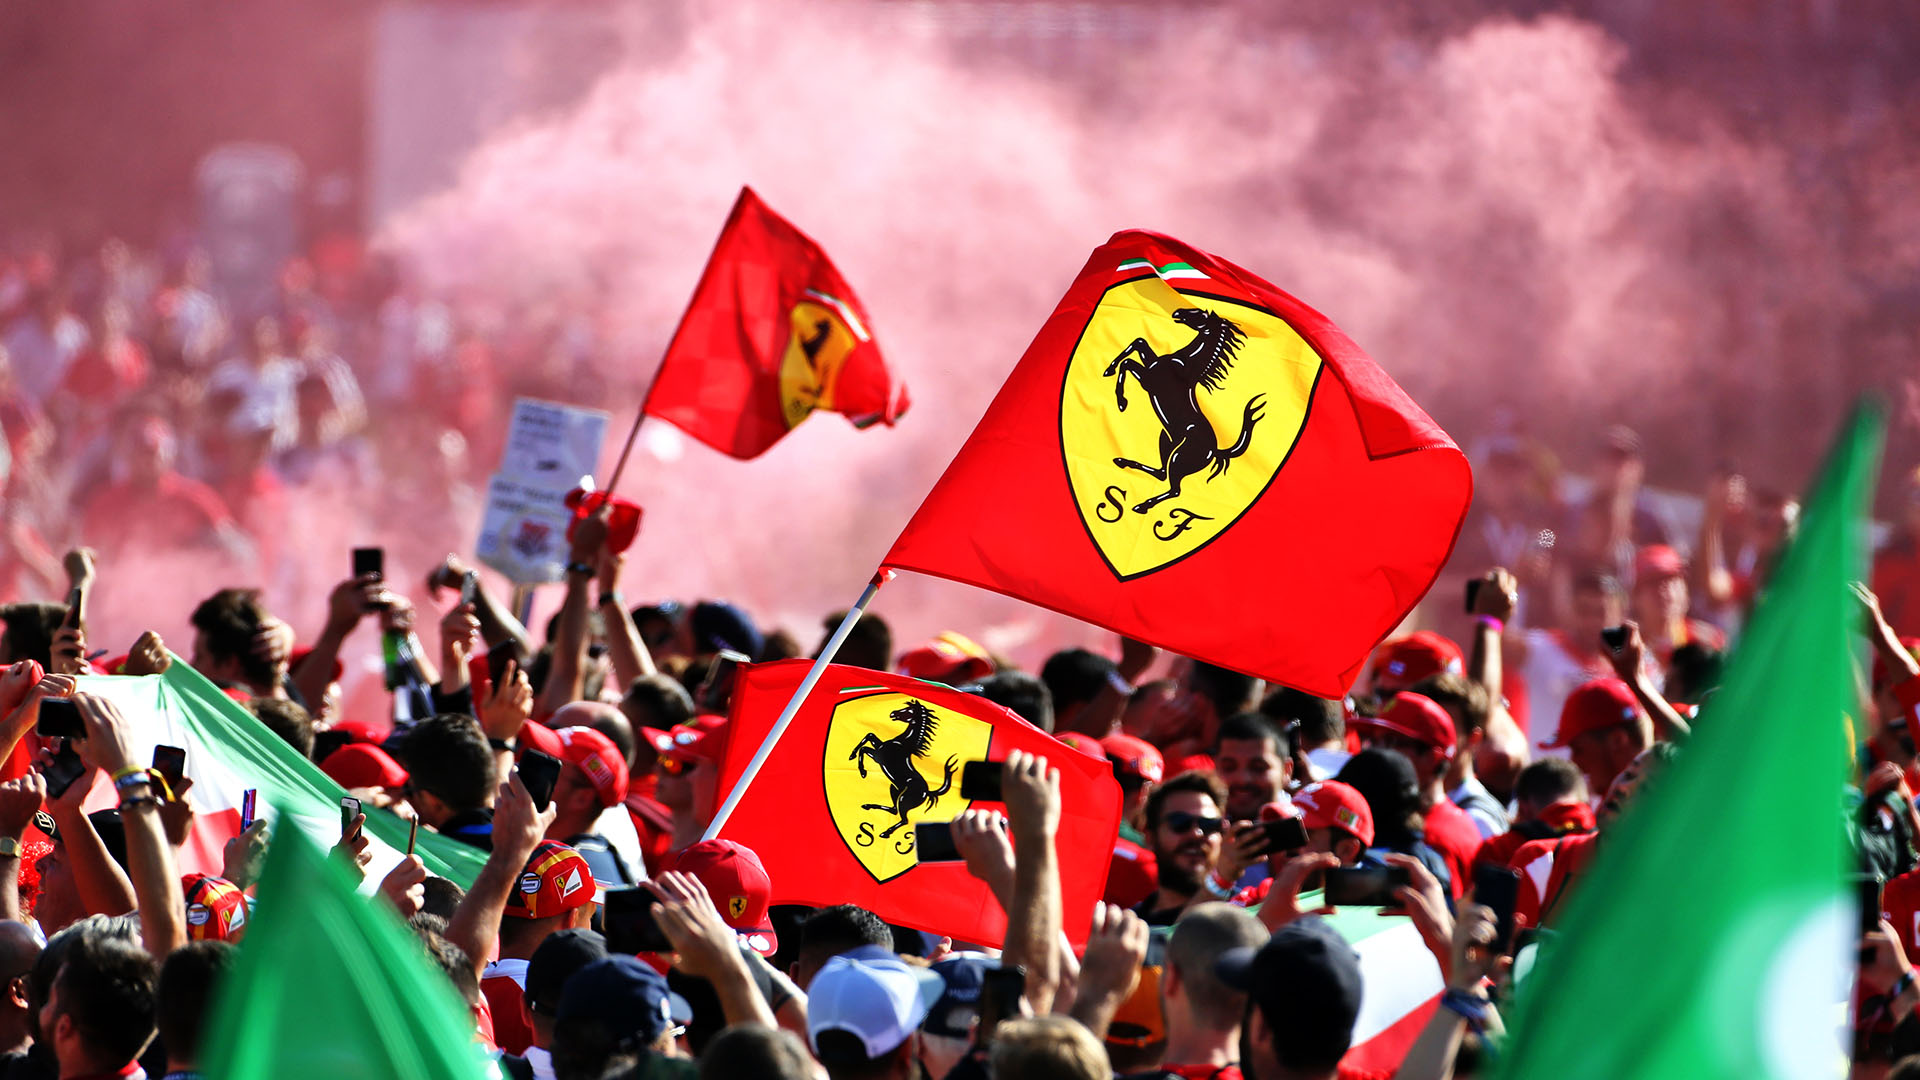 Ross's Italian GP review: An incredible spectacle in Monza | Formula 1®